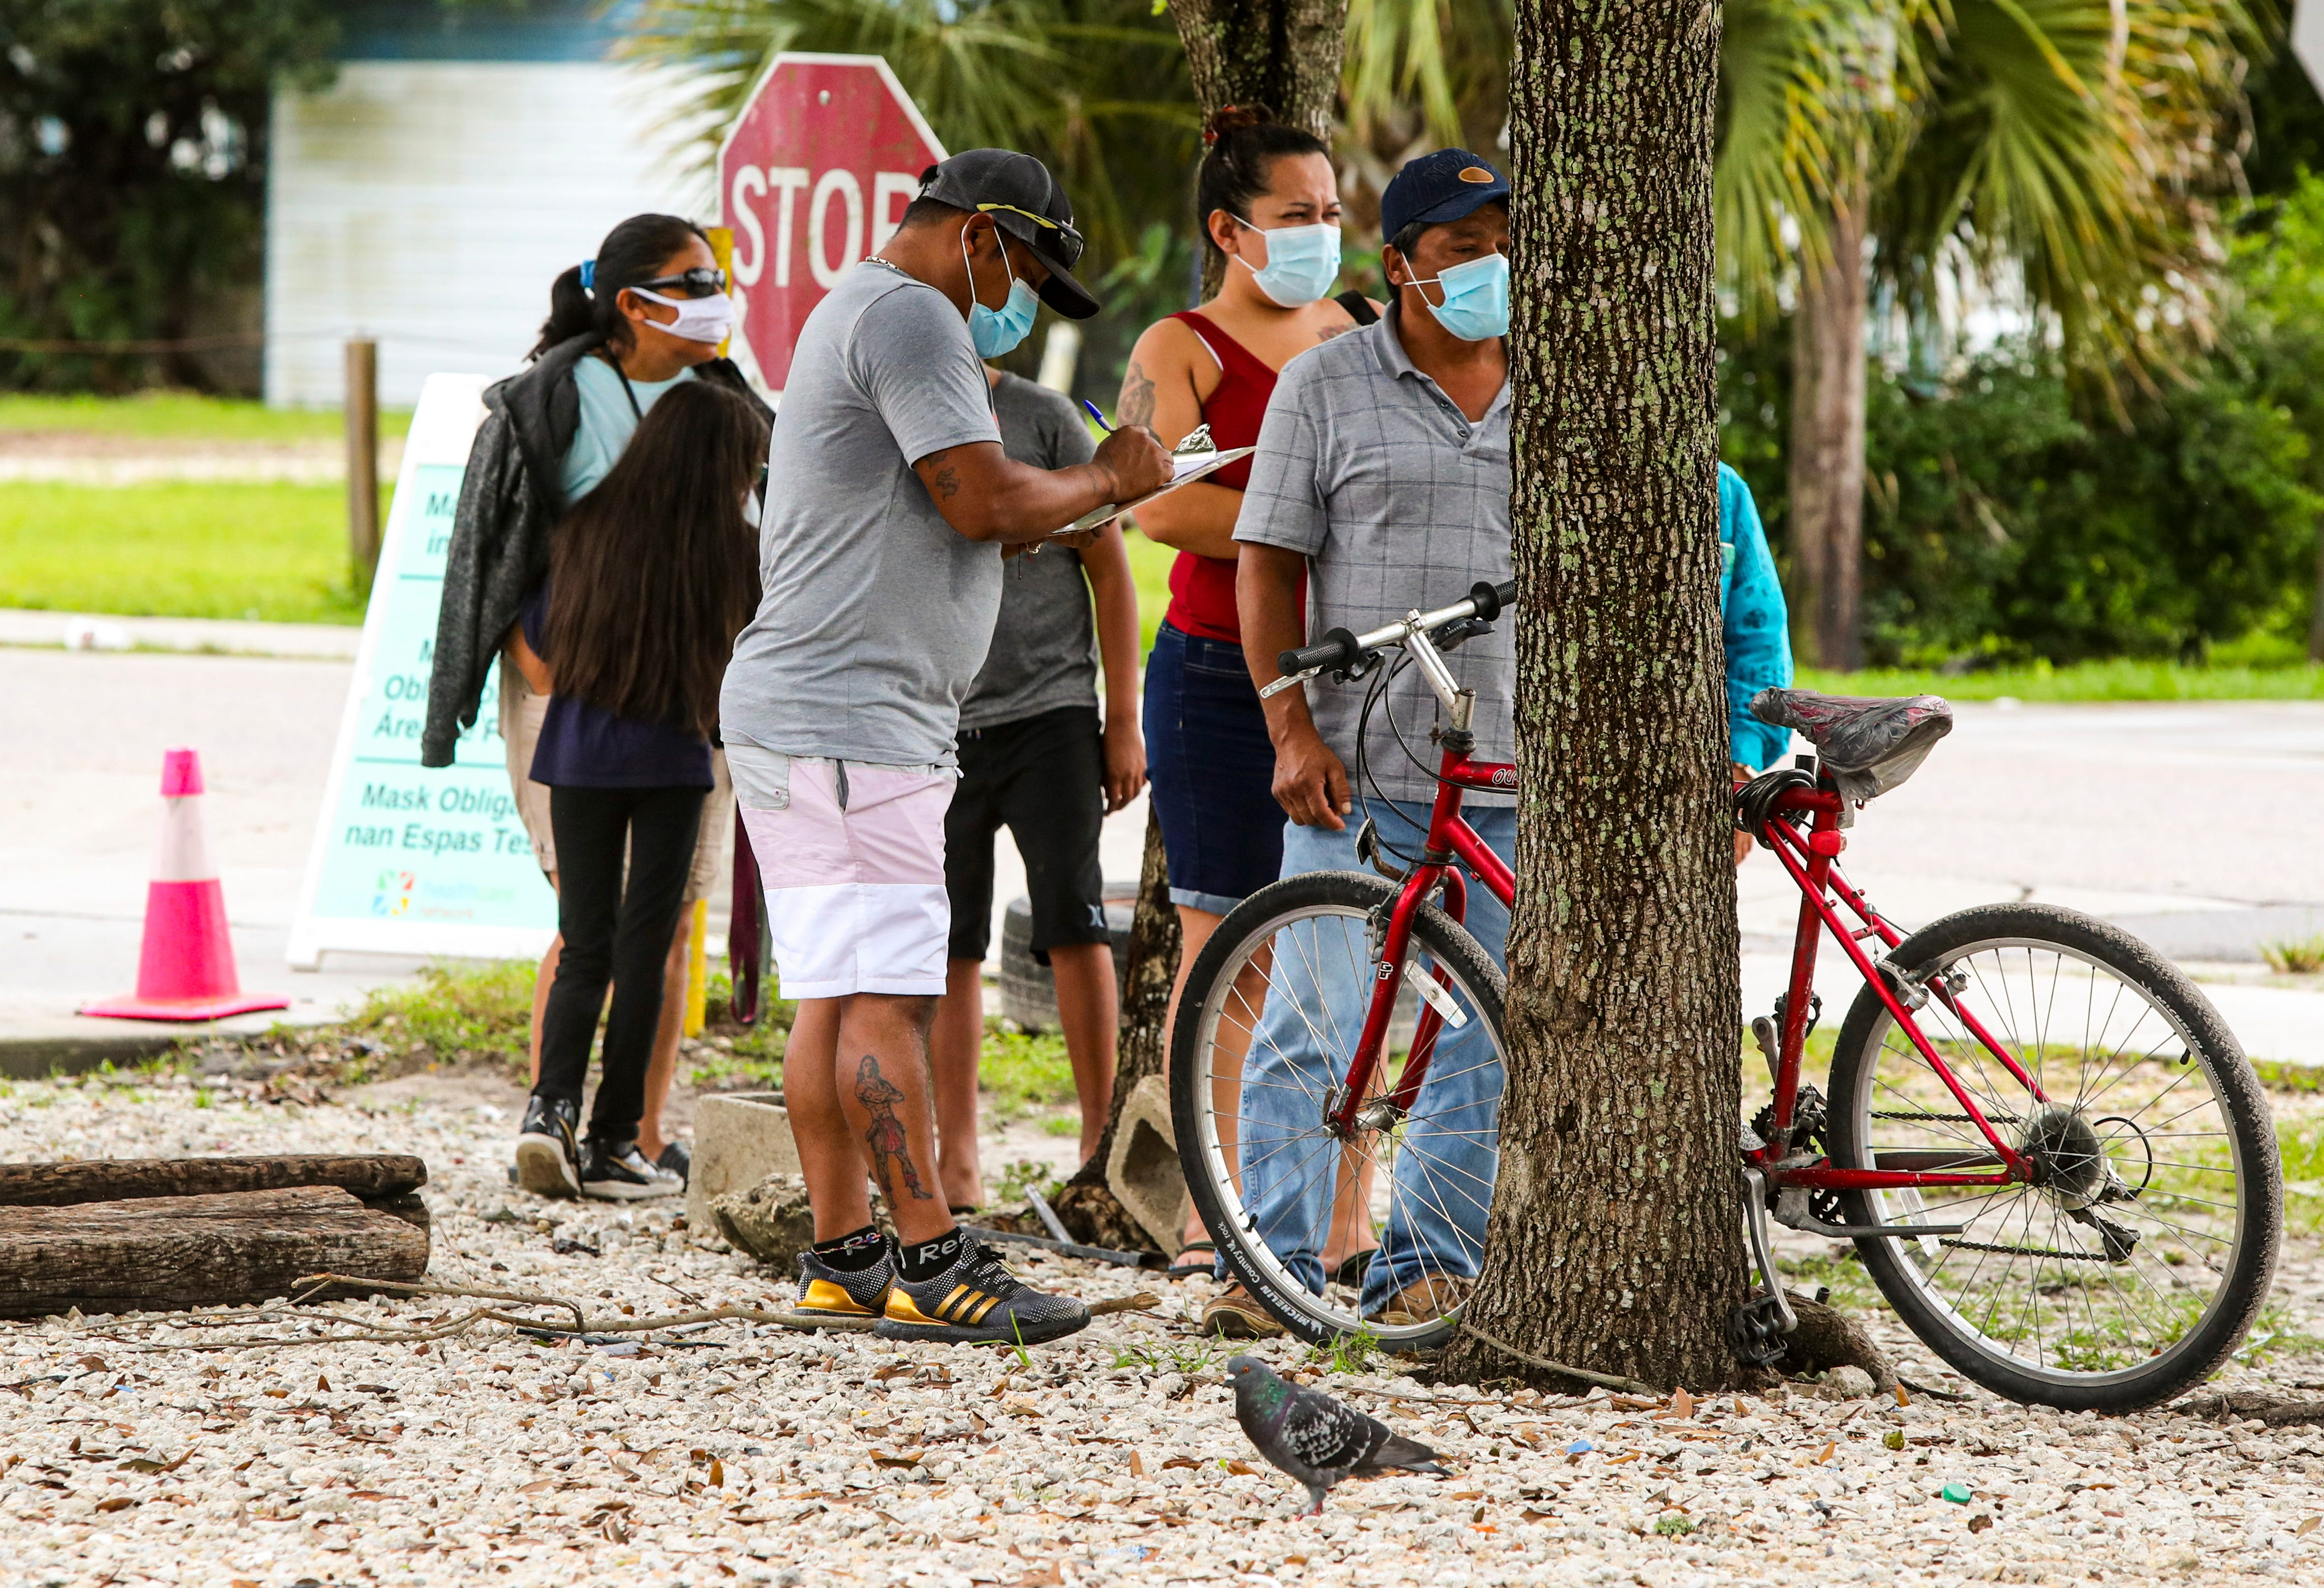 Healthcare Network hosts regular COVID-19 testing pop-up events in Immokalee, Florida. People lined up early for an event on Aug. 4, 2021.